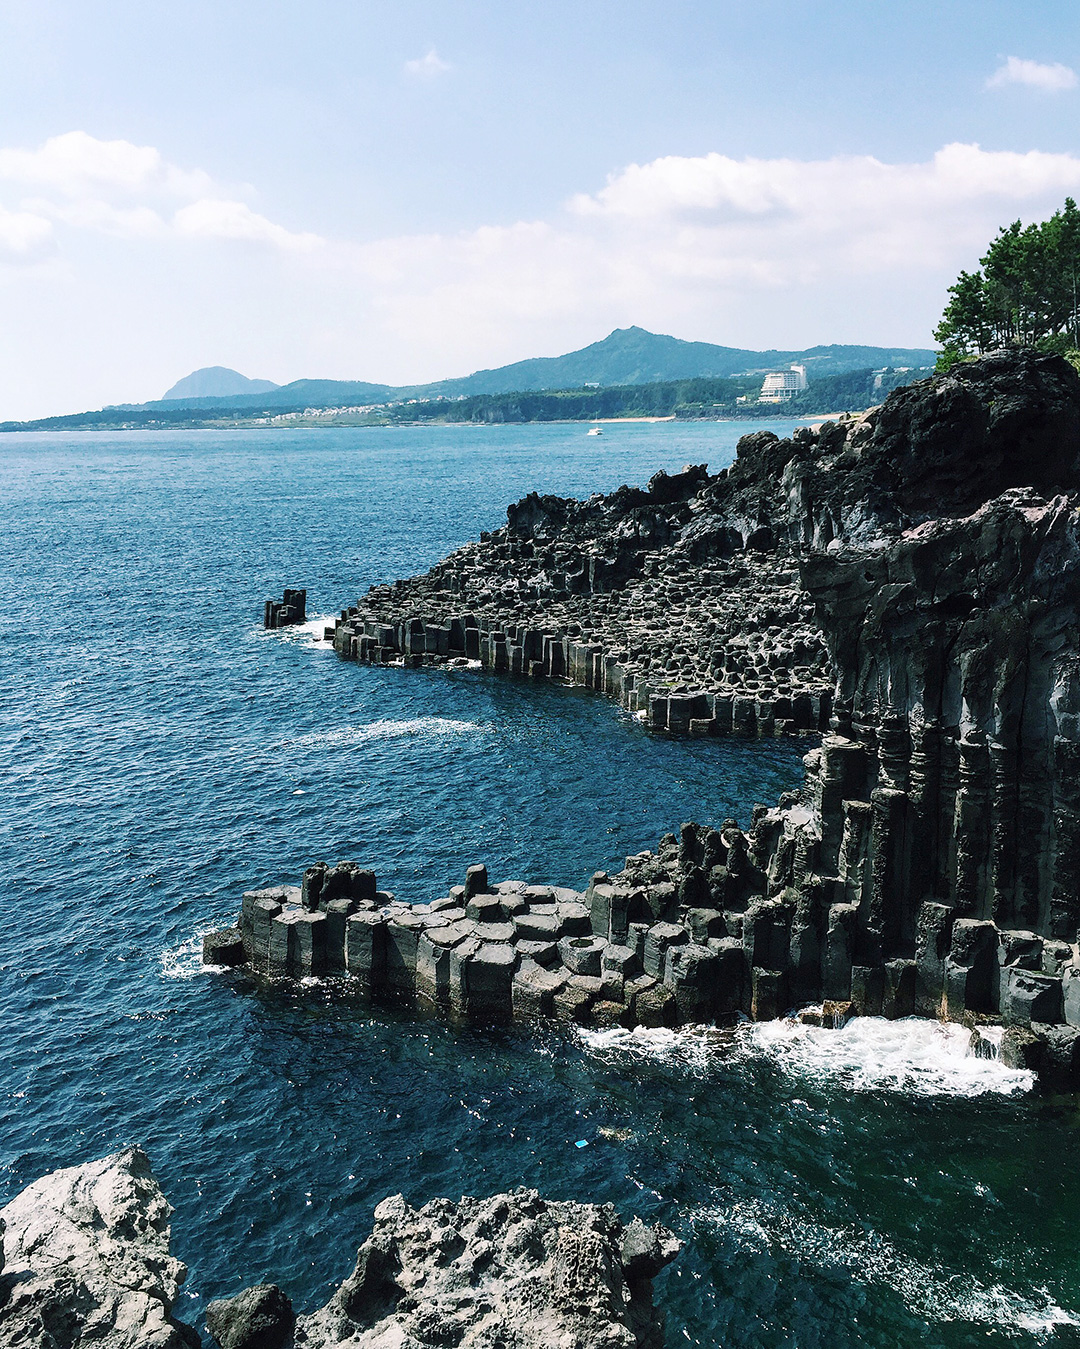 Breathtaking views of the Jusangjeolli Cliff that was formed when volcanic lava cooled and naturally formed pentagnal pillars.